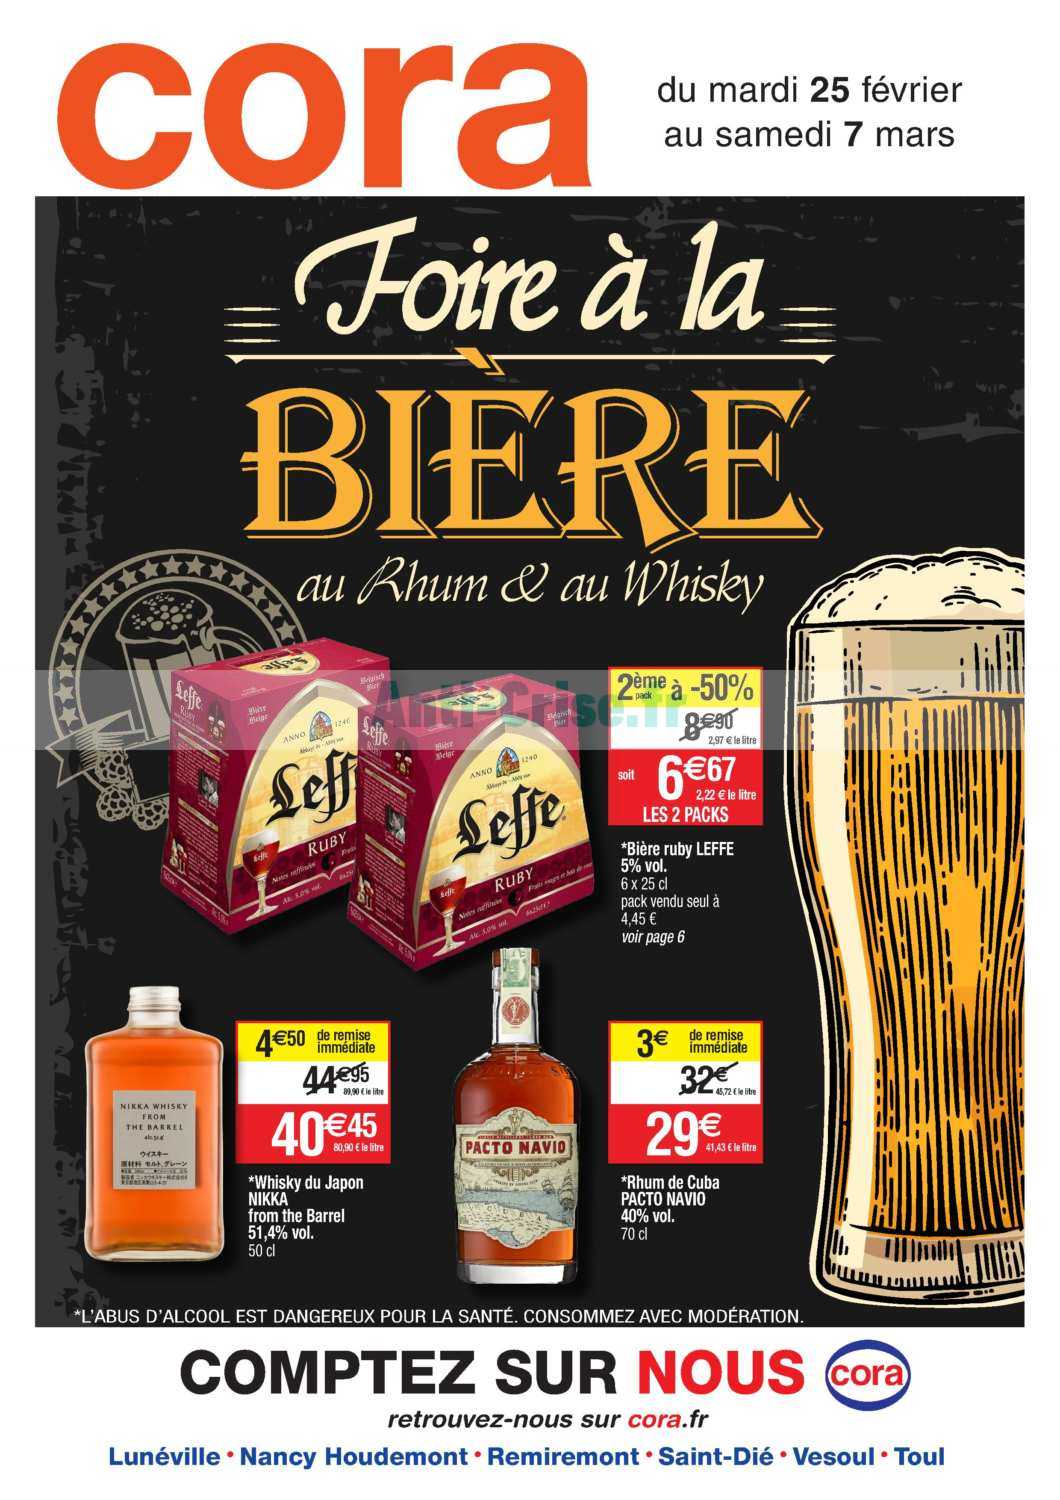 https://media.anti-crise.fr/2020/02/mars2020cora2502202007032020S0C0biere-1-212x300.jpg